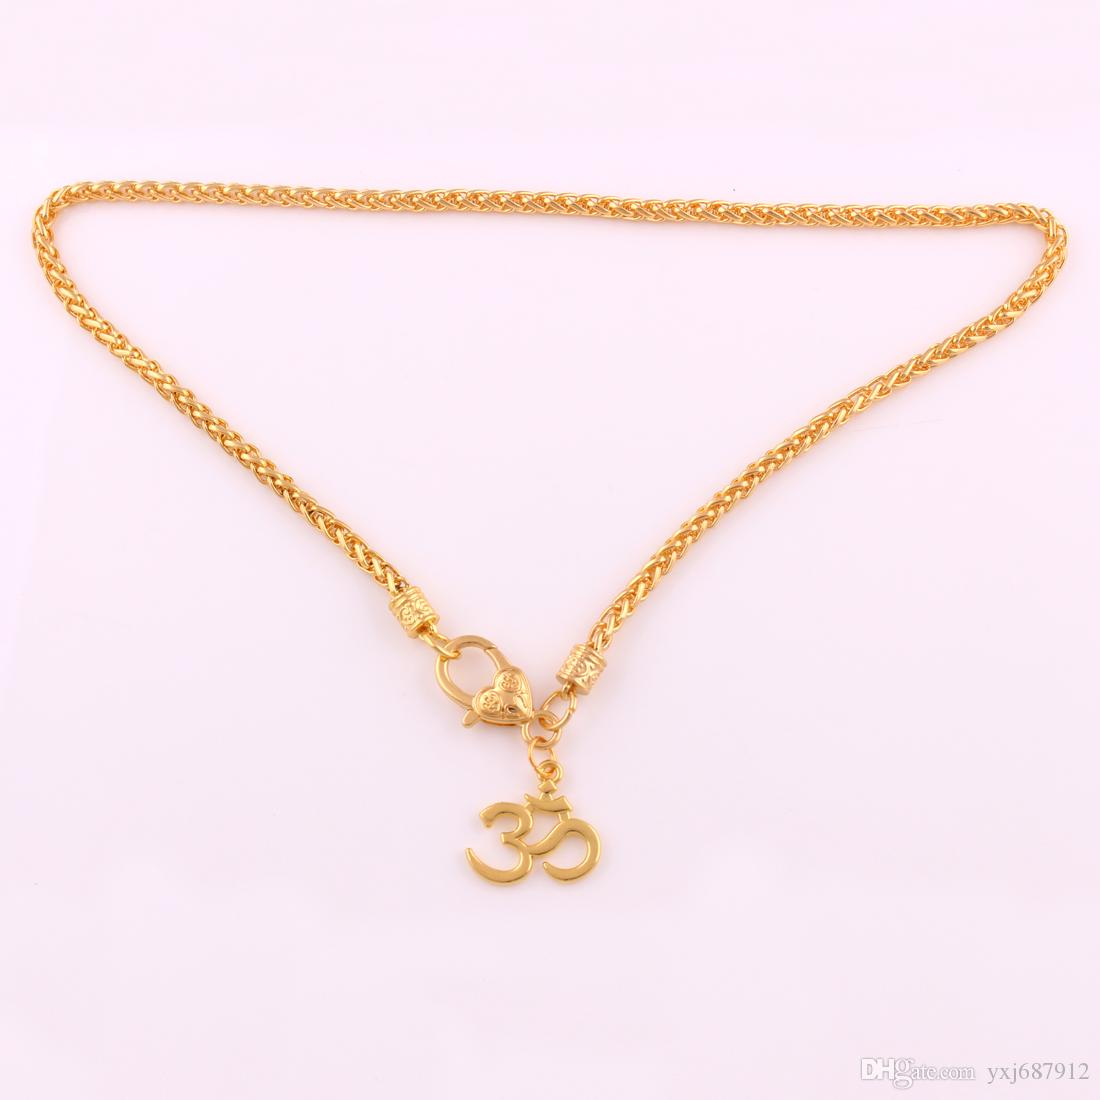 Zh6 Gold Fashion Om Aum Pendant Necklaces Fashion Rhodium Yoga Meditation Ohm Asana With Wheat Snake Chain Necklace Jewelry Pertaining To Most Recent Wheat Pendant Necklaces (View 5 of 25)